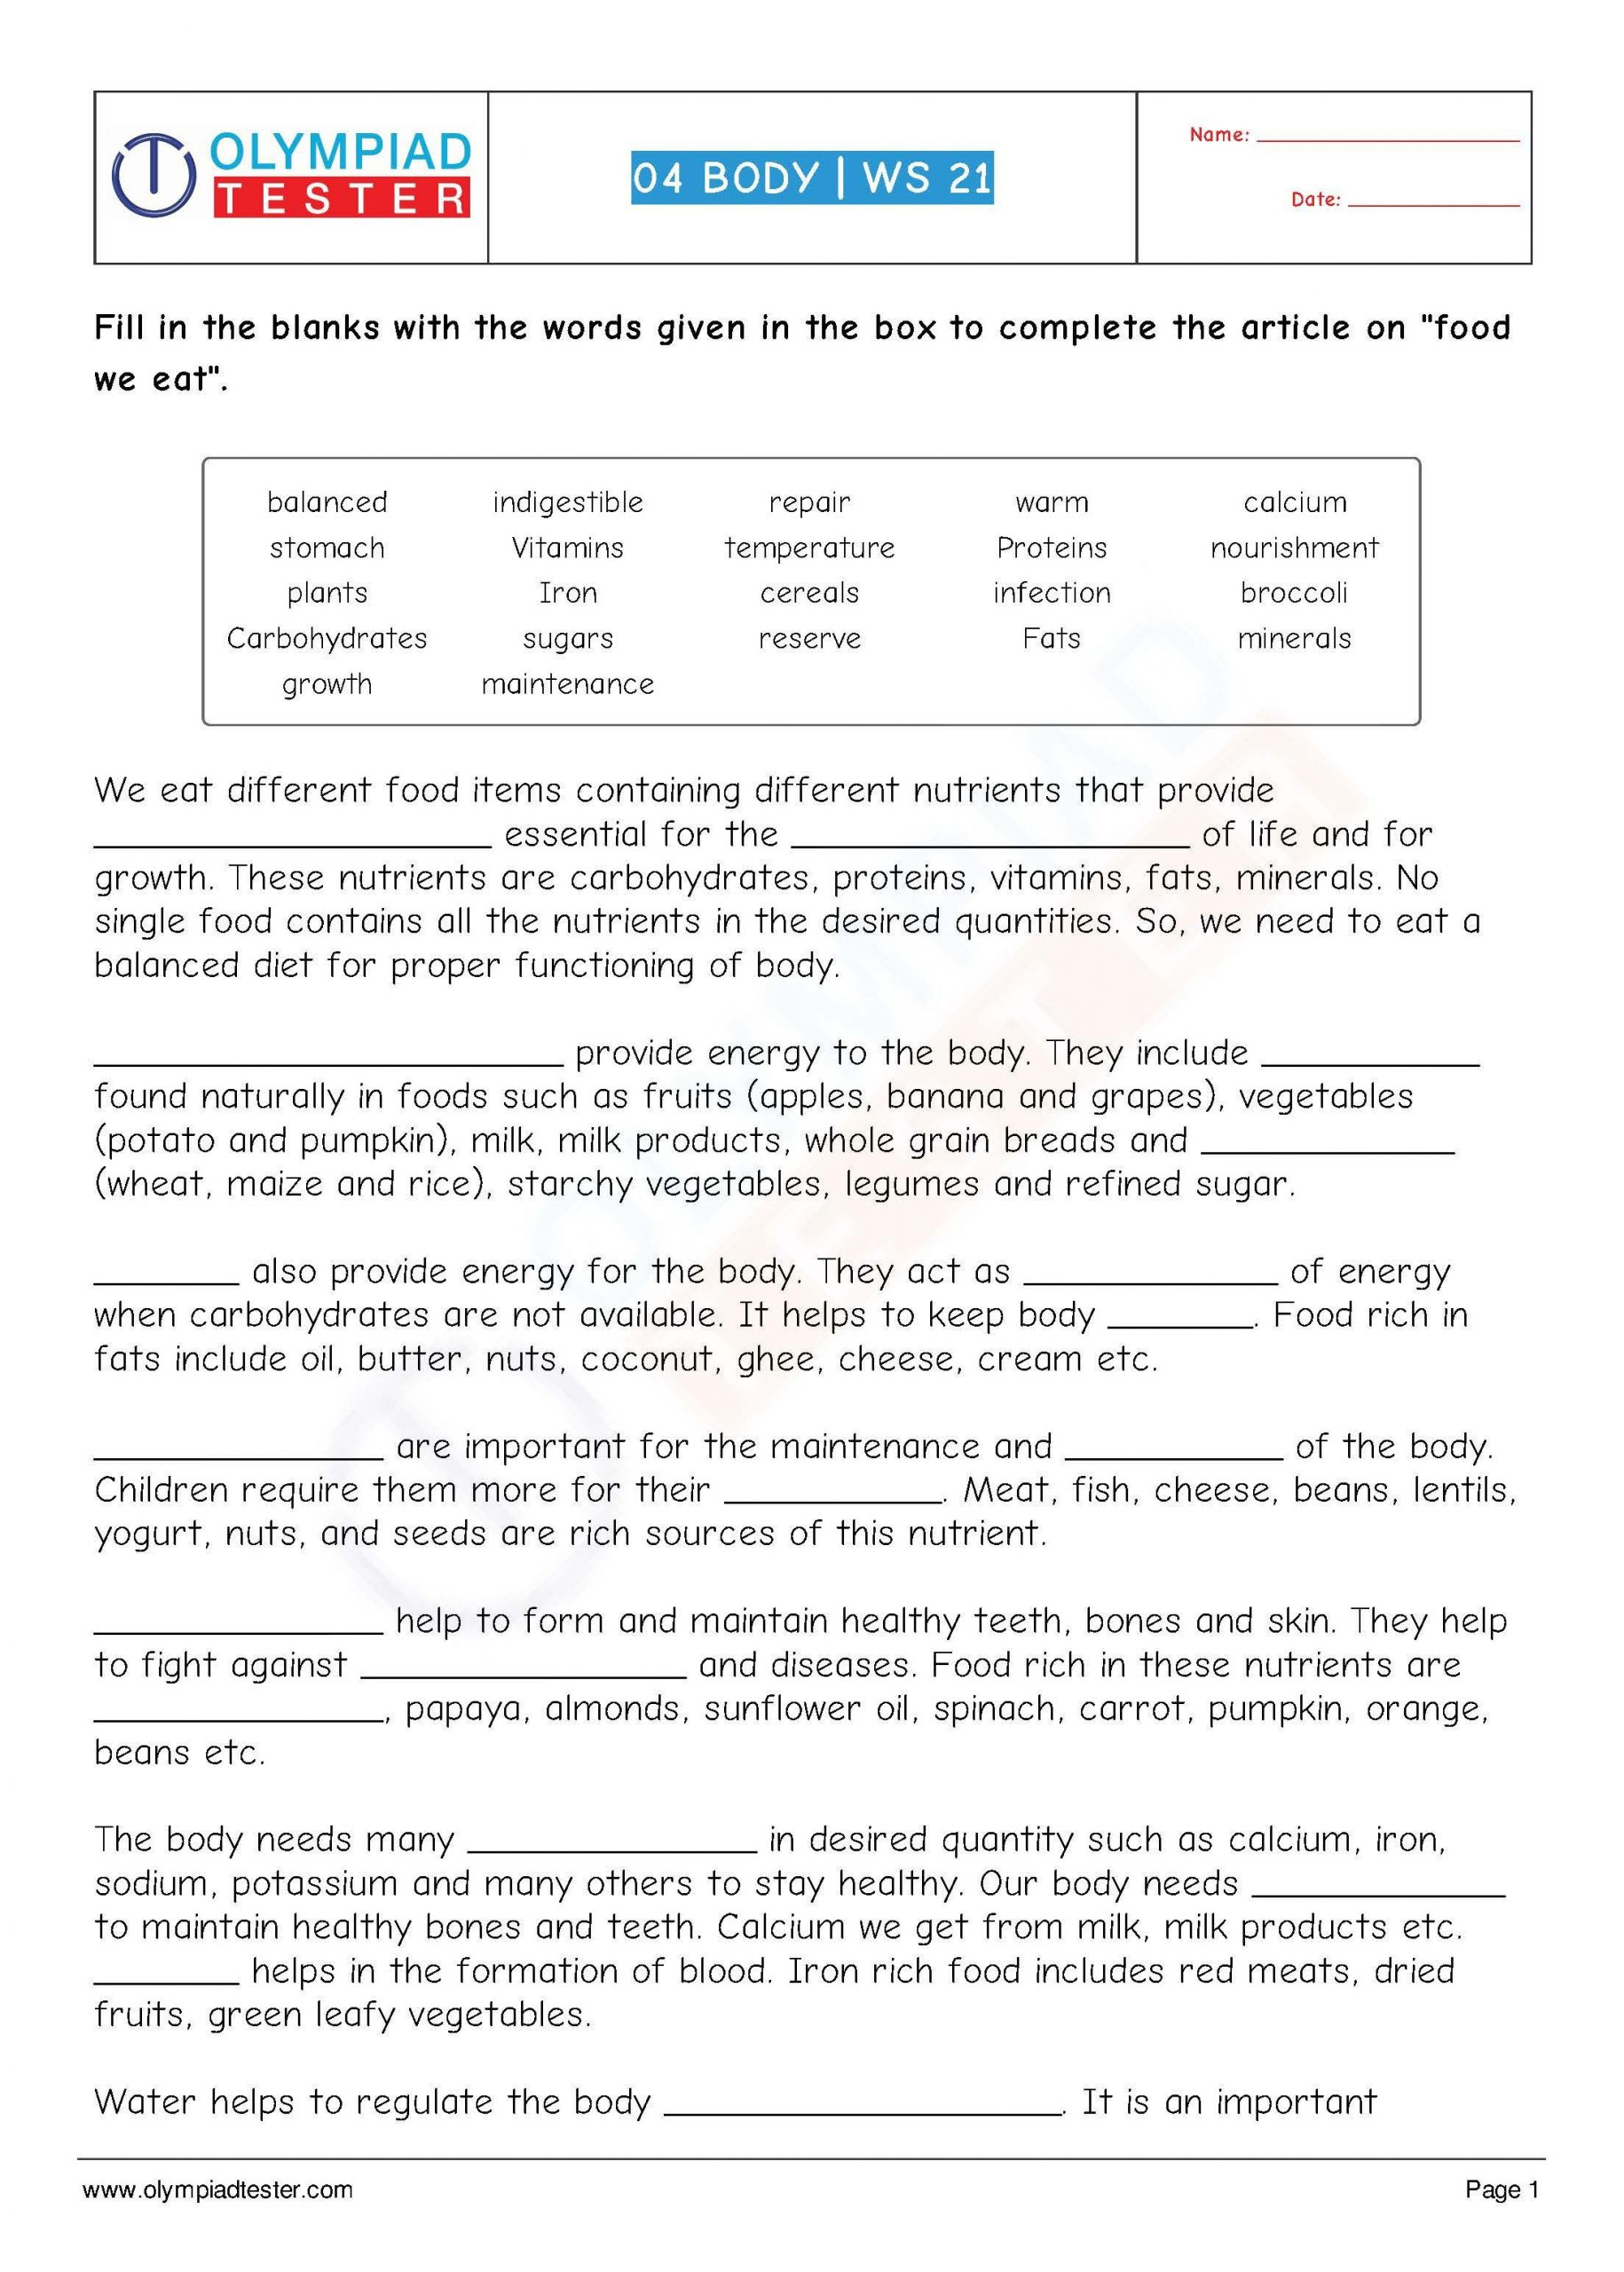 5th Grade Science Worksheets Pdf Class 4 Science Human Body Worksheet 21